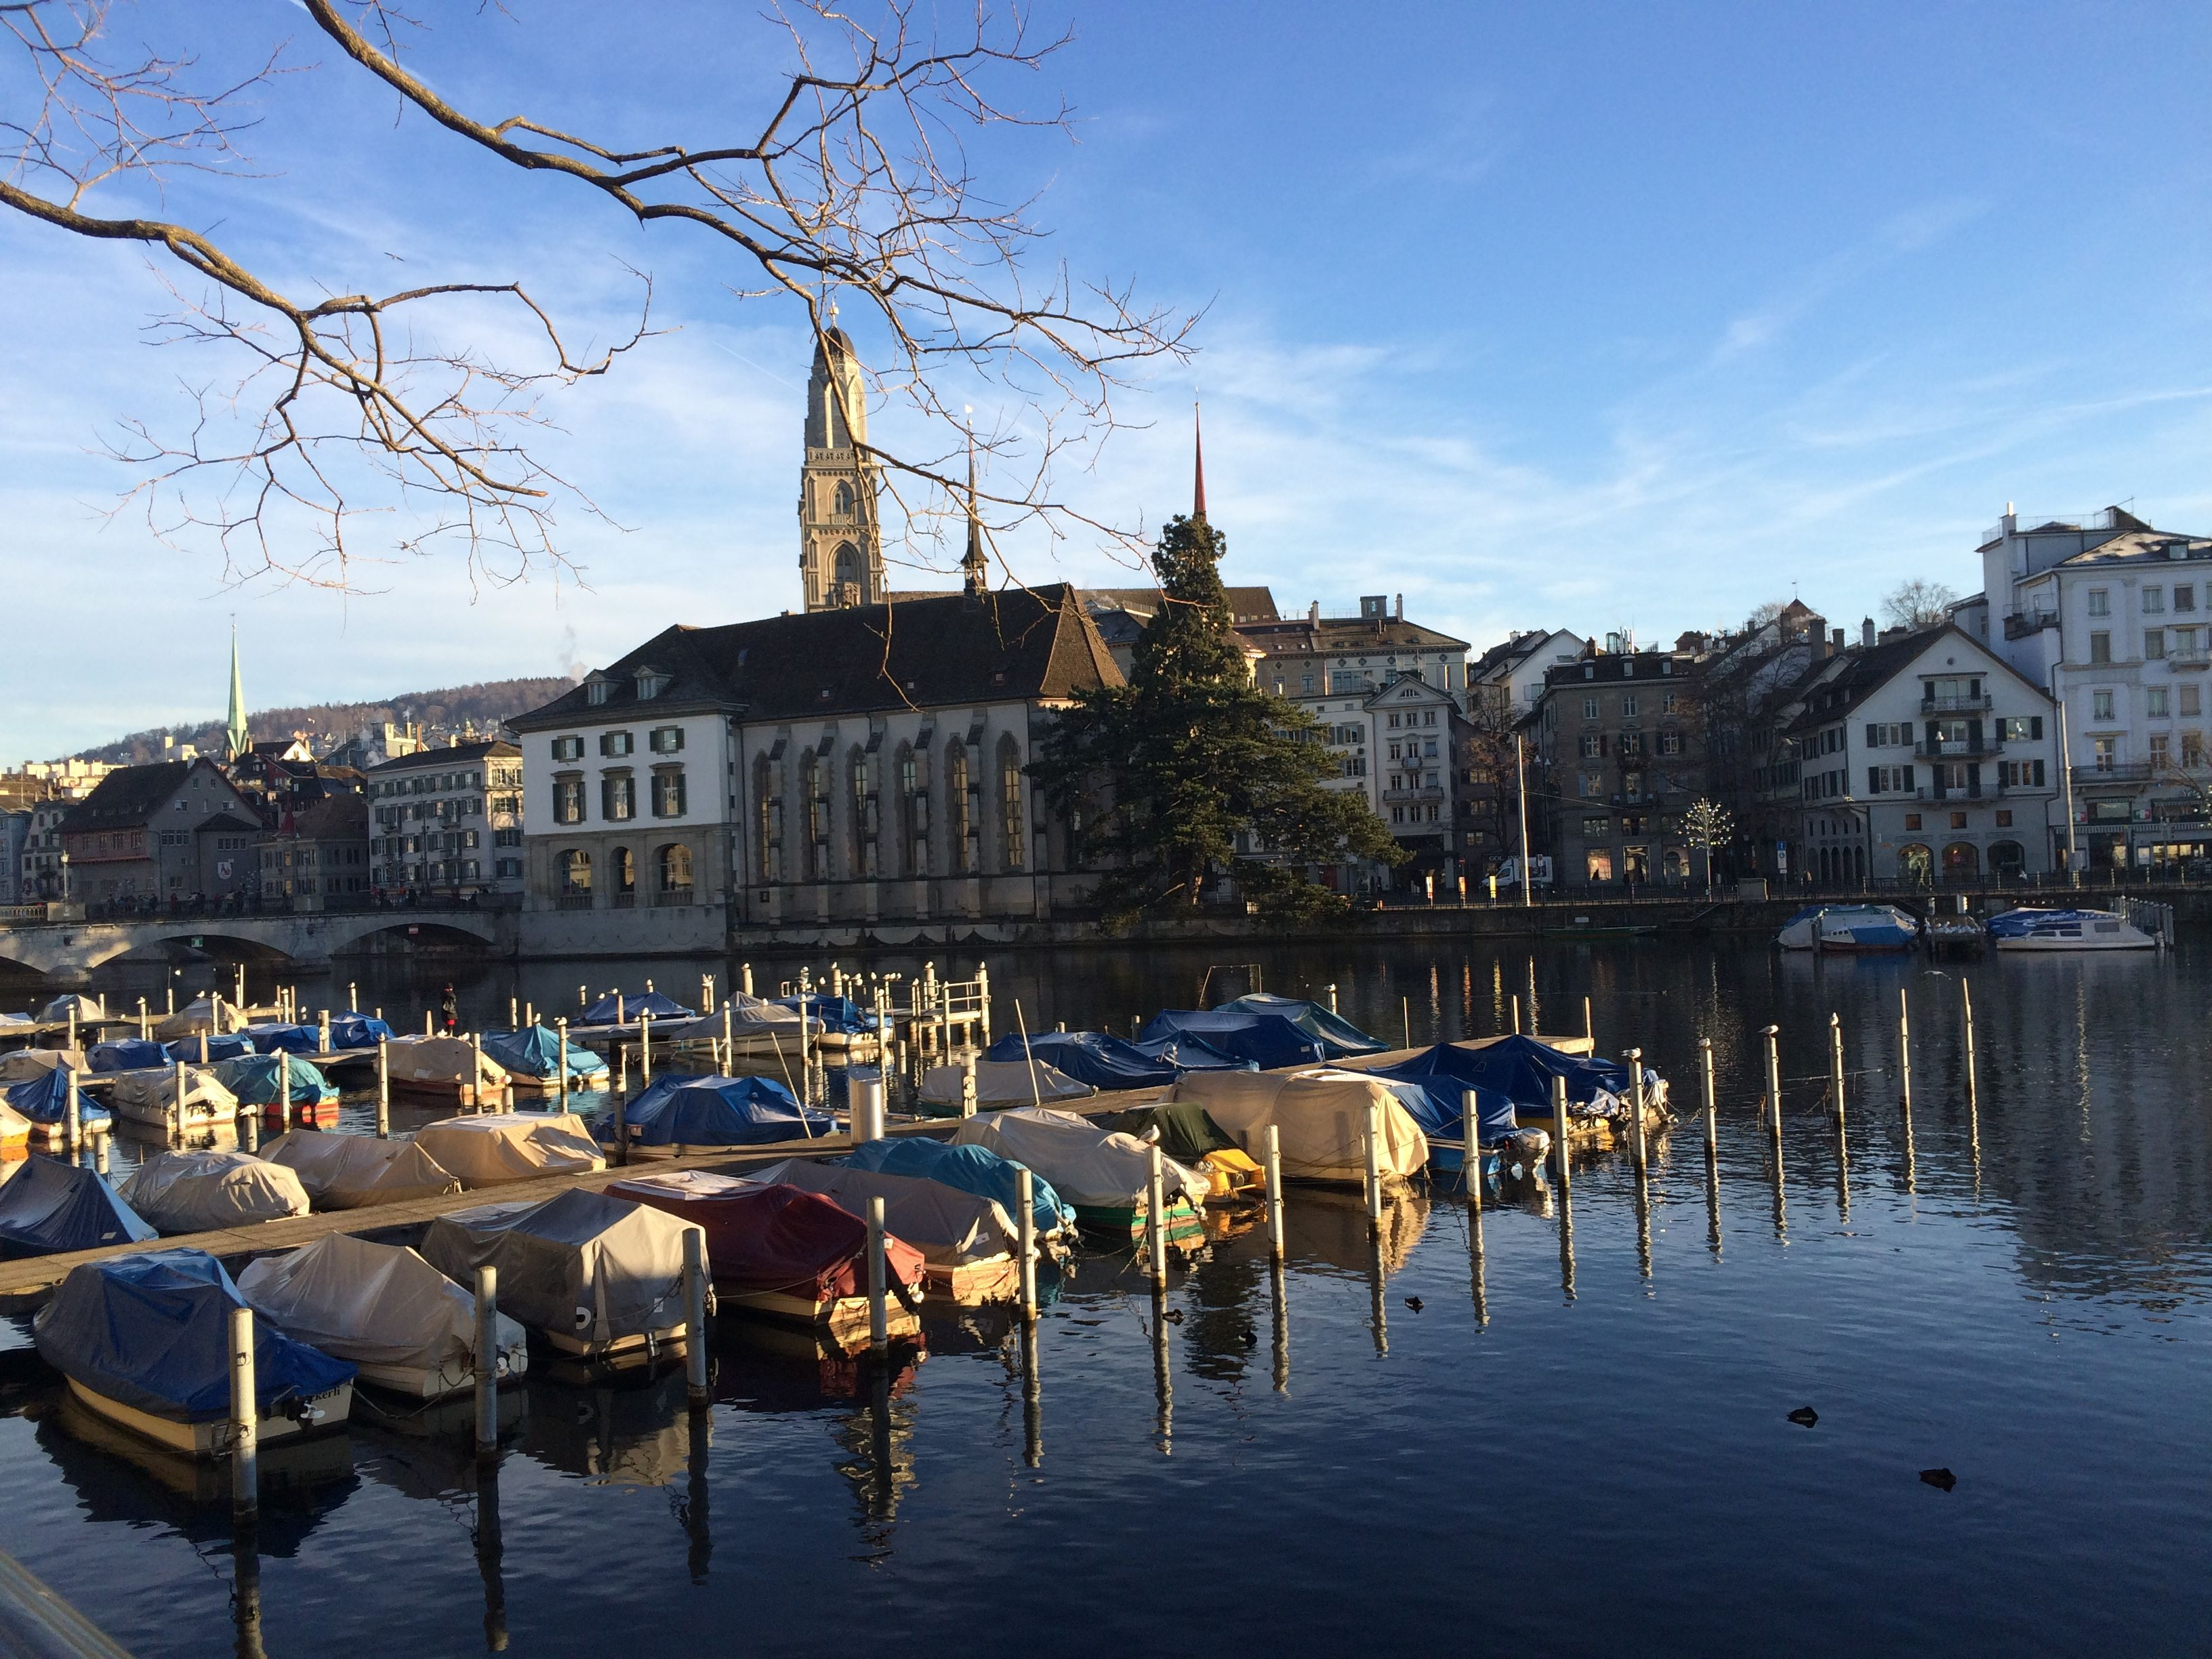 Hallo from Zürich Photo from 23.12.2014